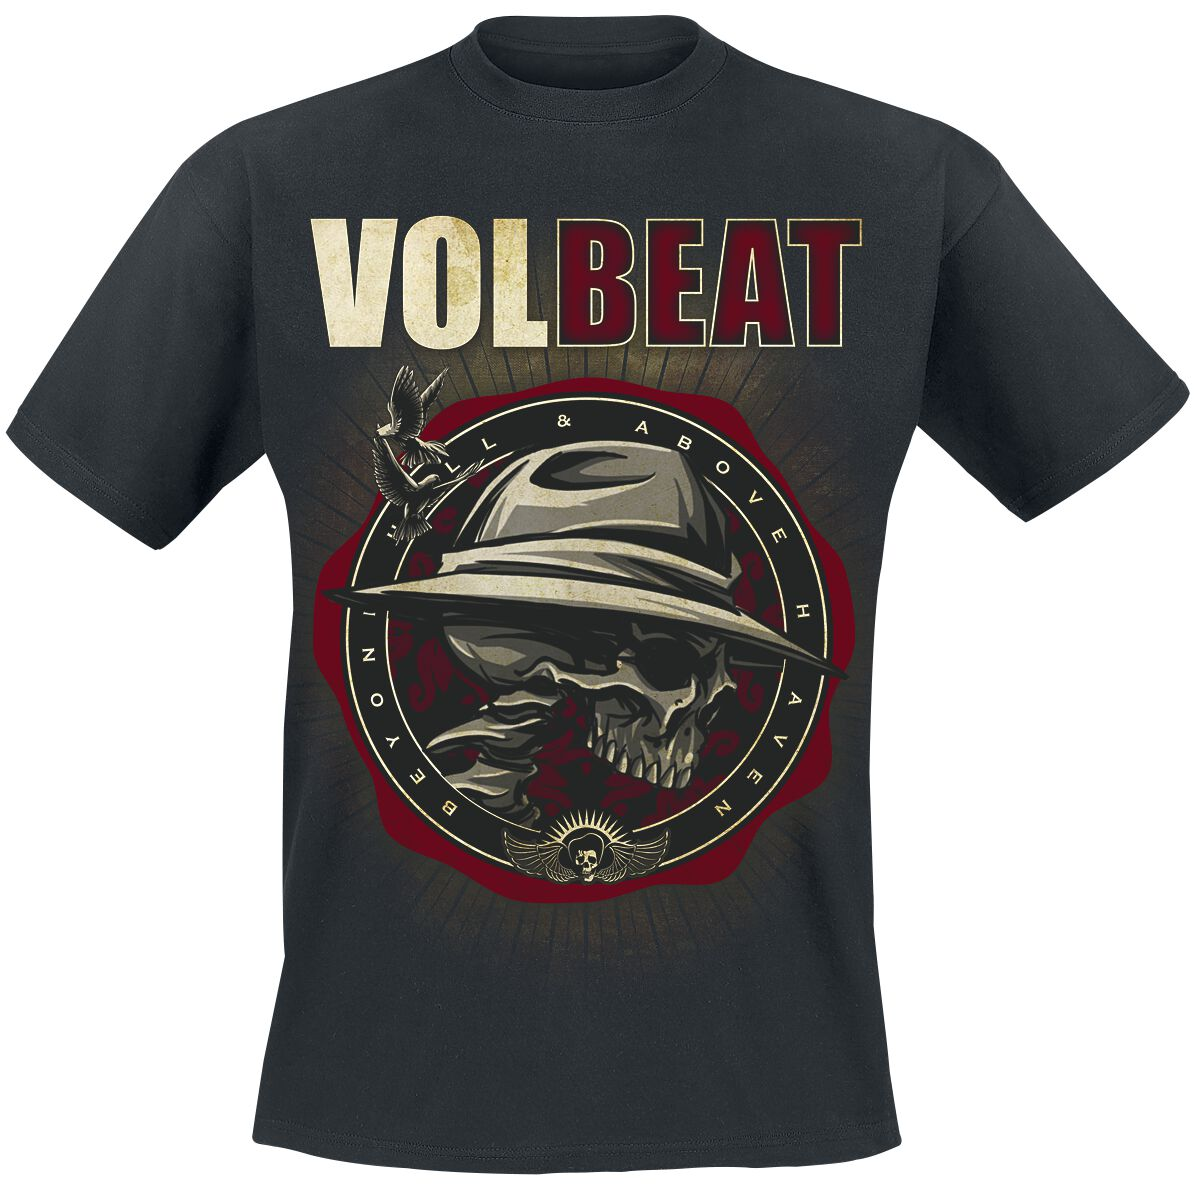 Image of   Volbeat Beyond Hell & Above Heaven T-Shirt sort